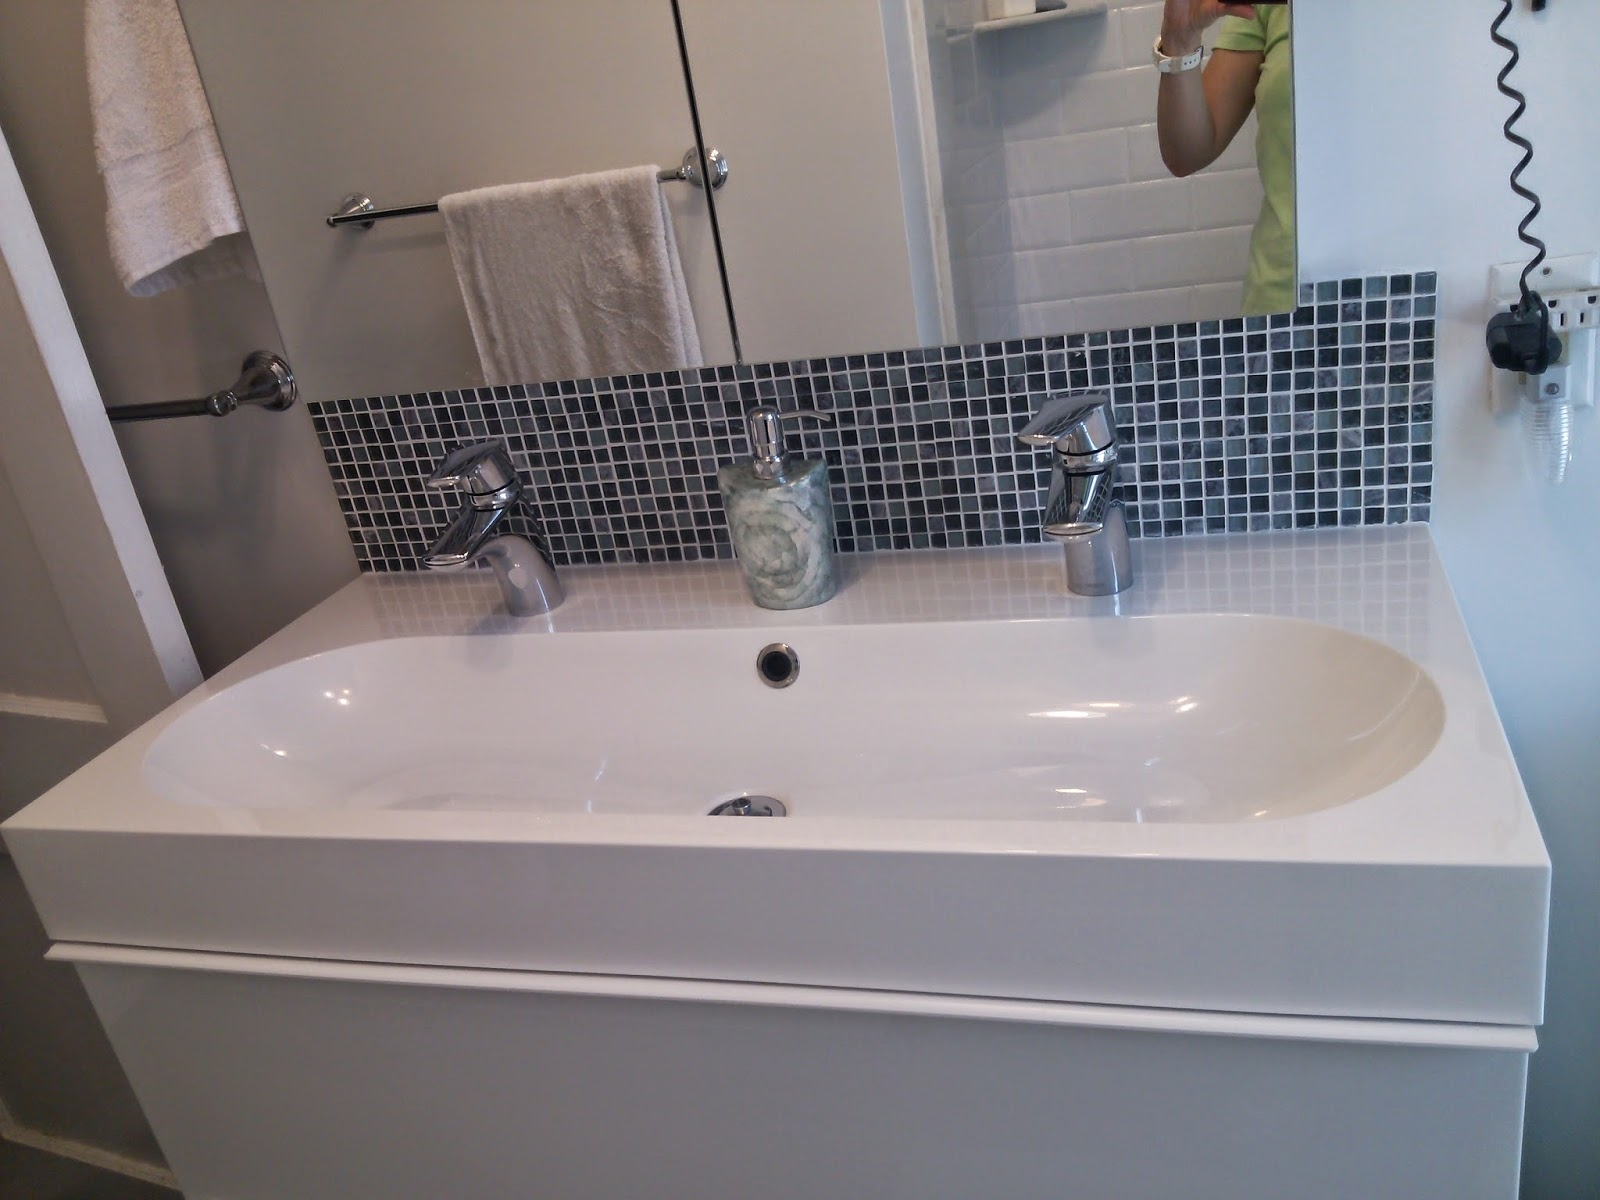 Enjoyable Trough Sink With 2 Faucets Bathroom Download Free Architecture Designs Scobabritishbridgeorg